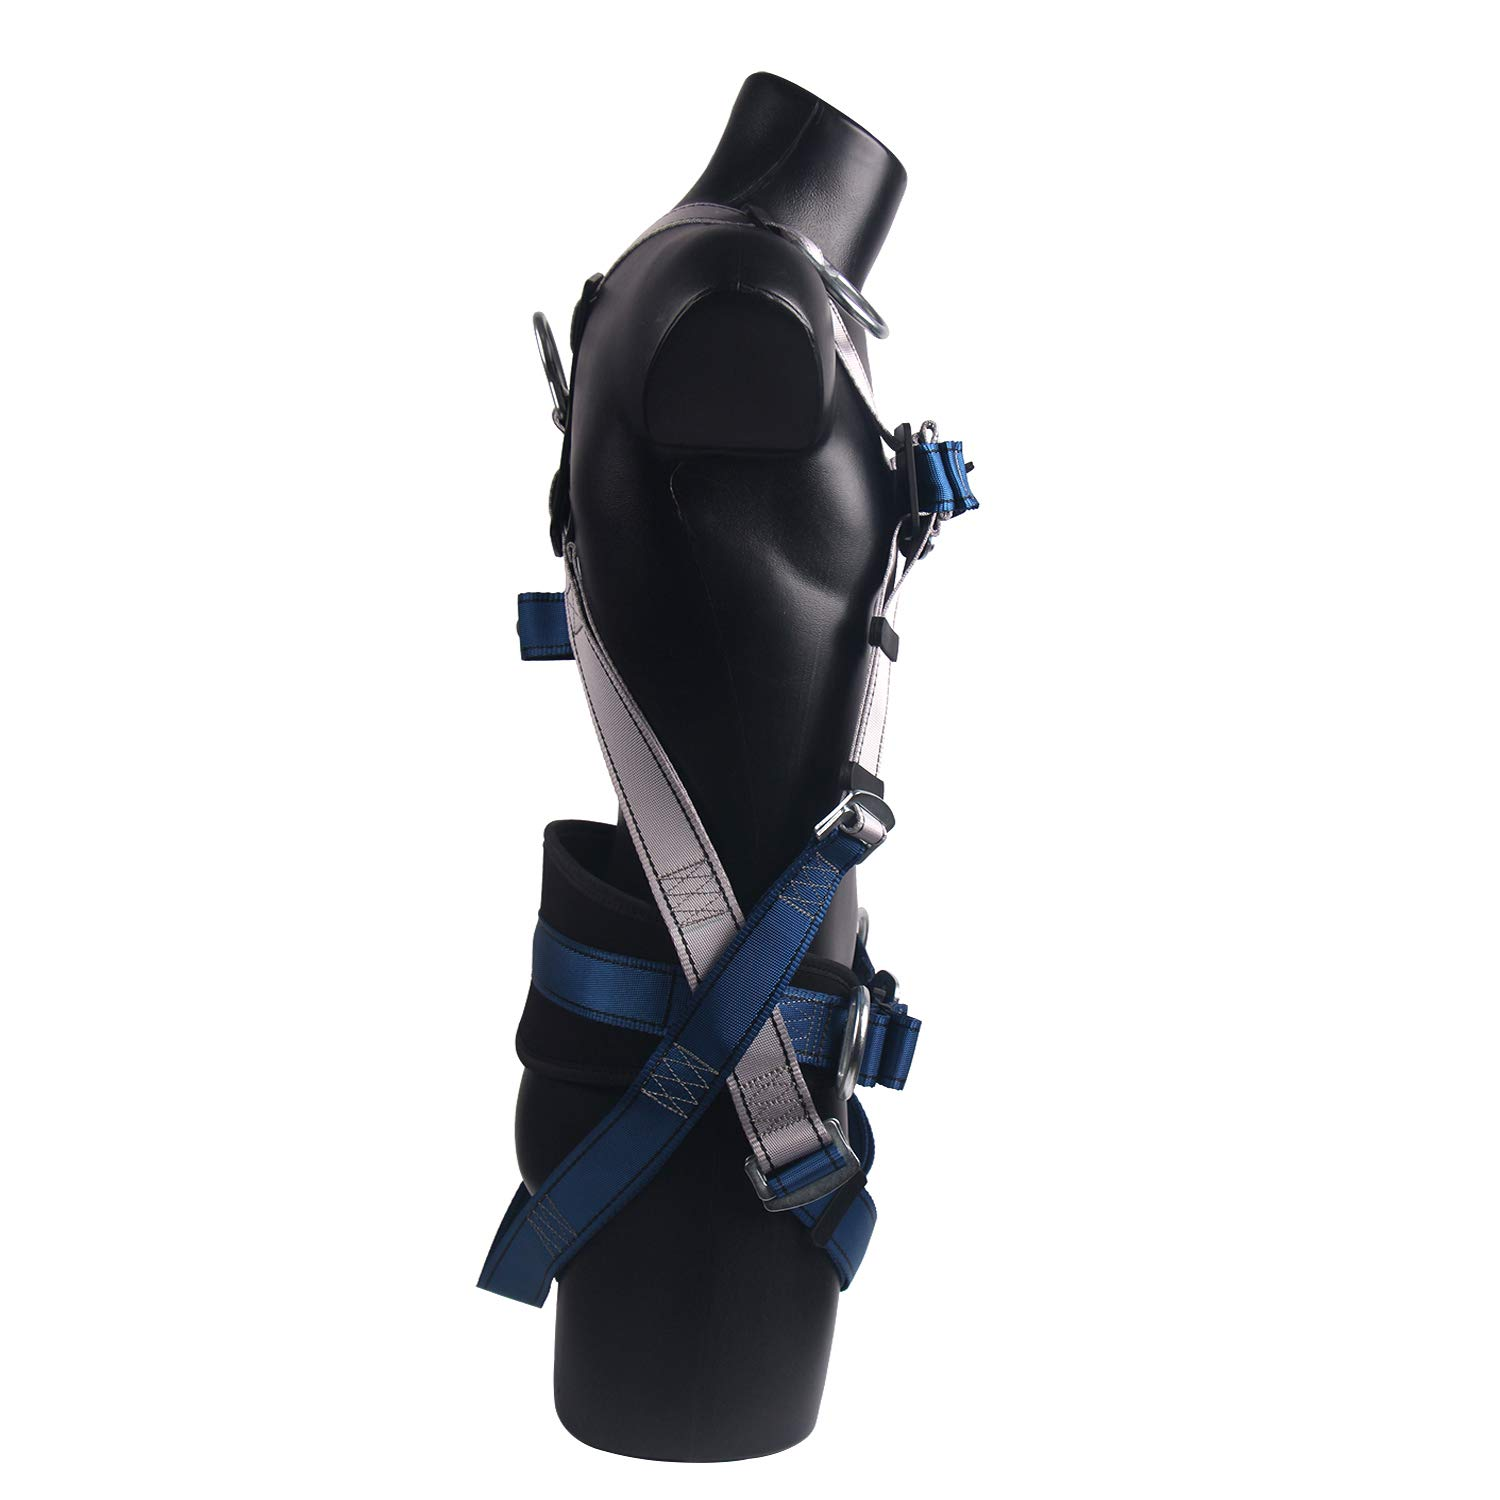 JINGYAT Full Body Safety Harness Fall Protection with 5 D-Ring,Universal Personal Protective Equipment (130-310 pound),Construction Industrial Tower Roofing Tool by JINGYAT (Image #4)